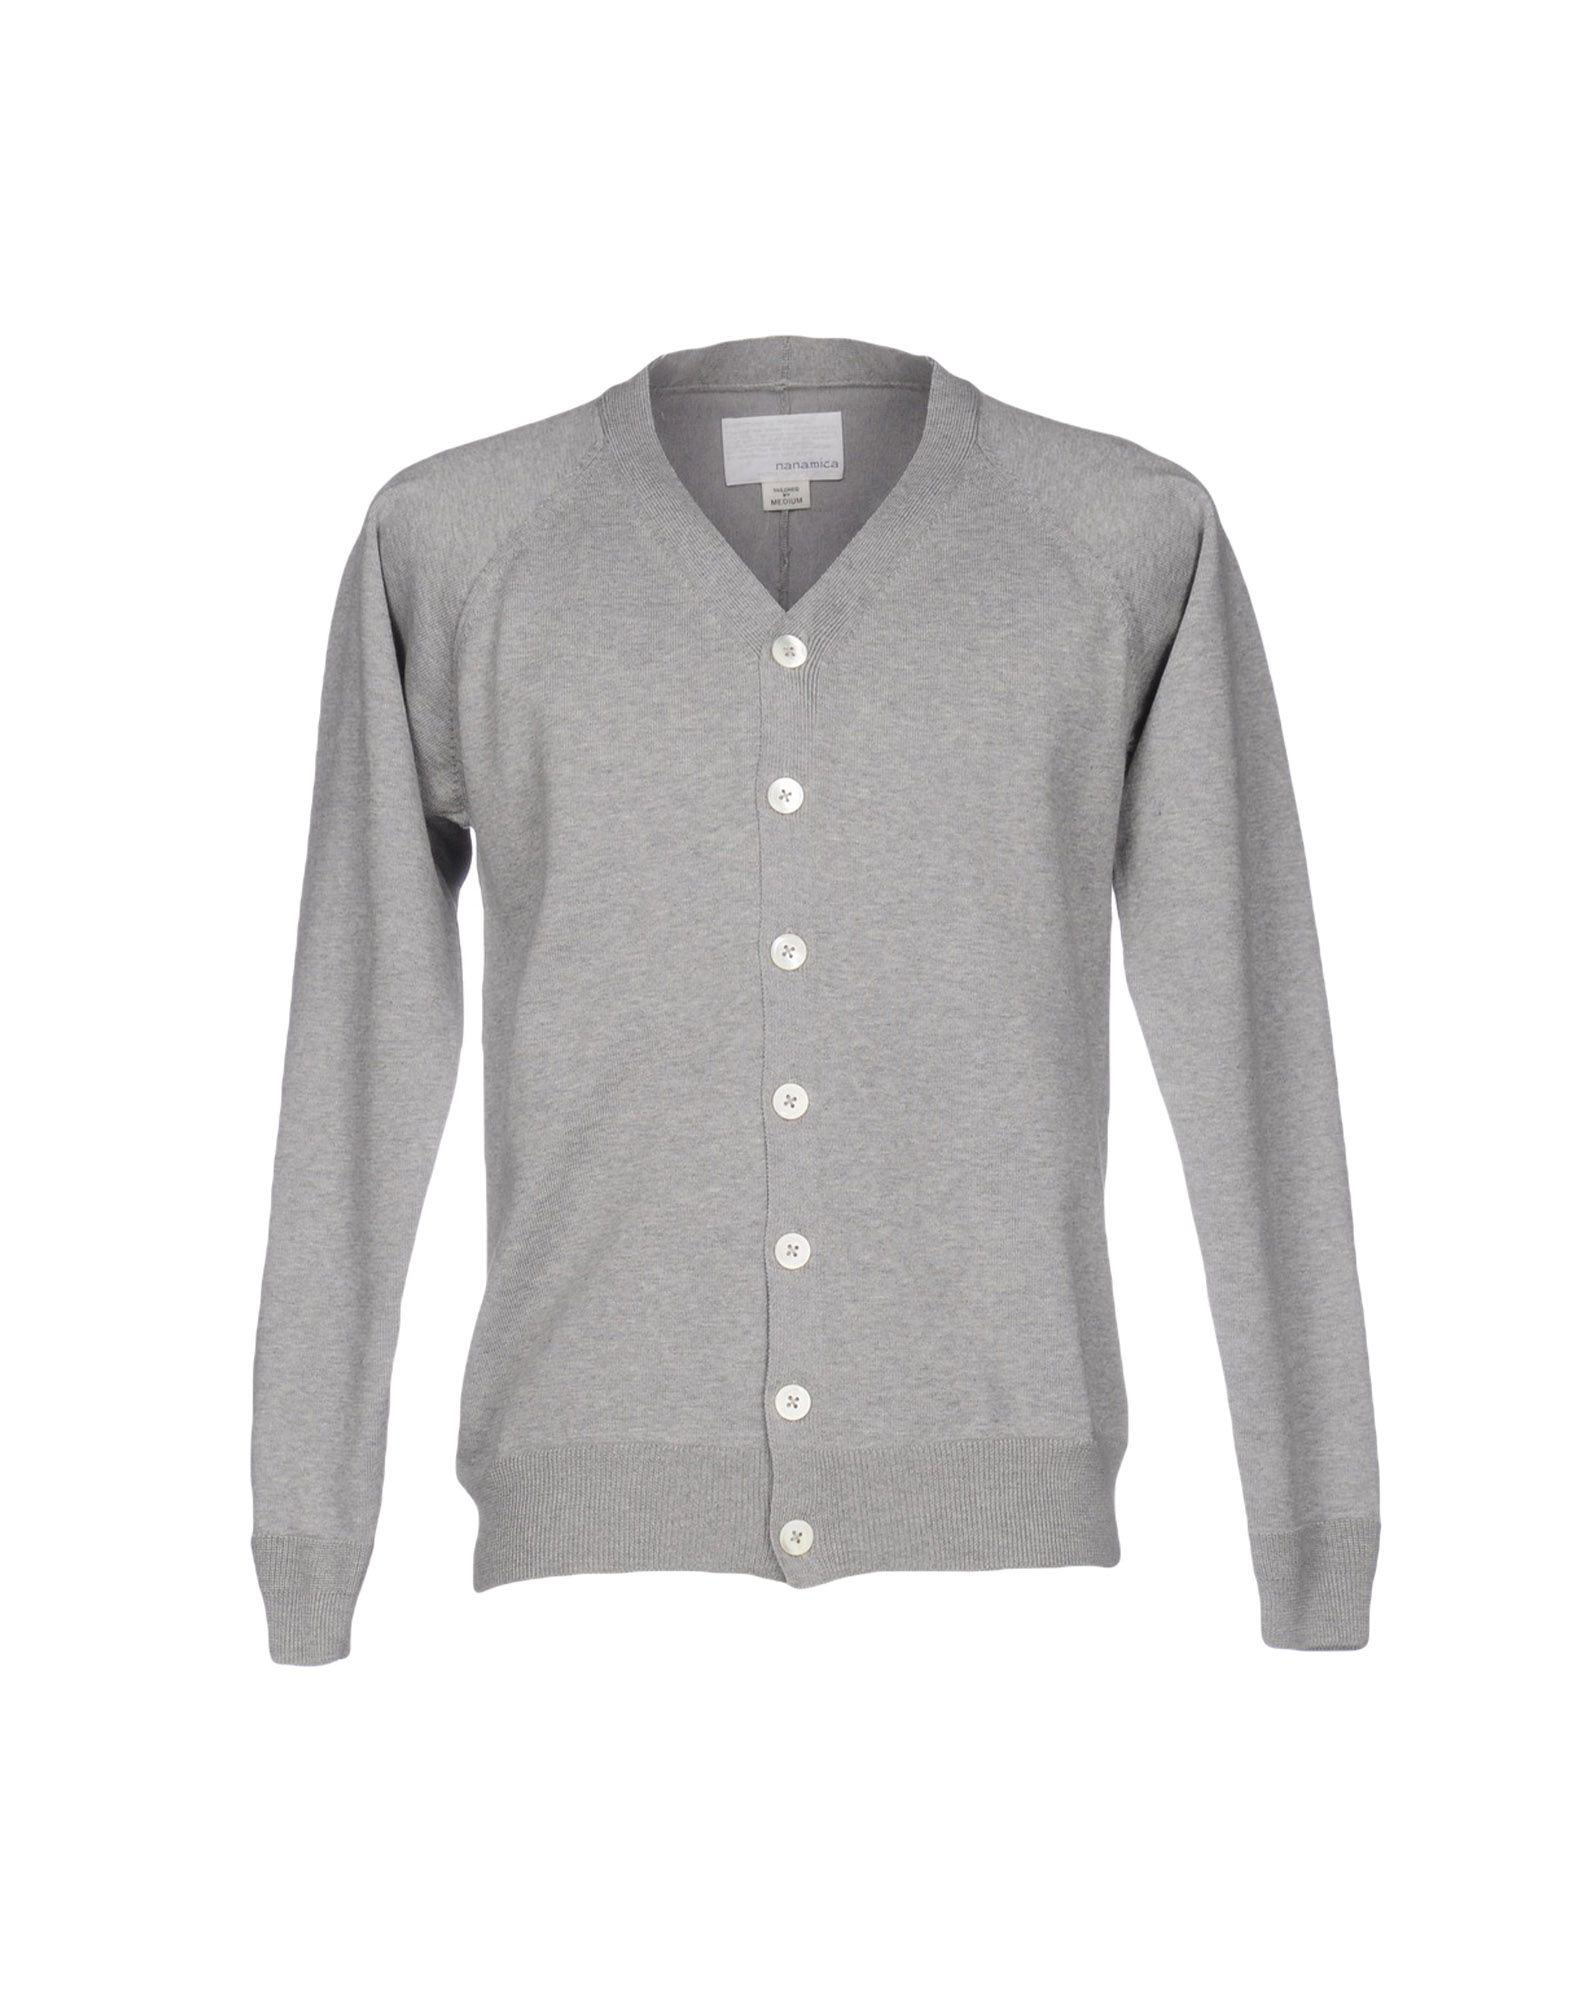 Cheapest Price Online Best Wholesale Cheap Price KNITWEAR - Cardigans Scabal DsntS7TG